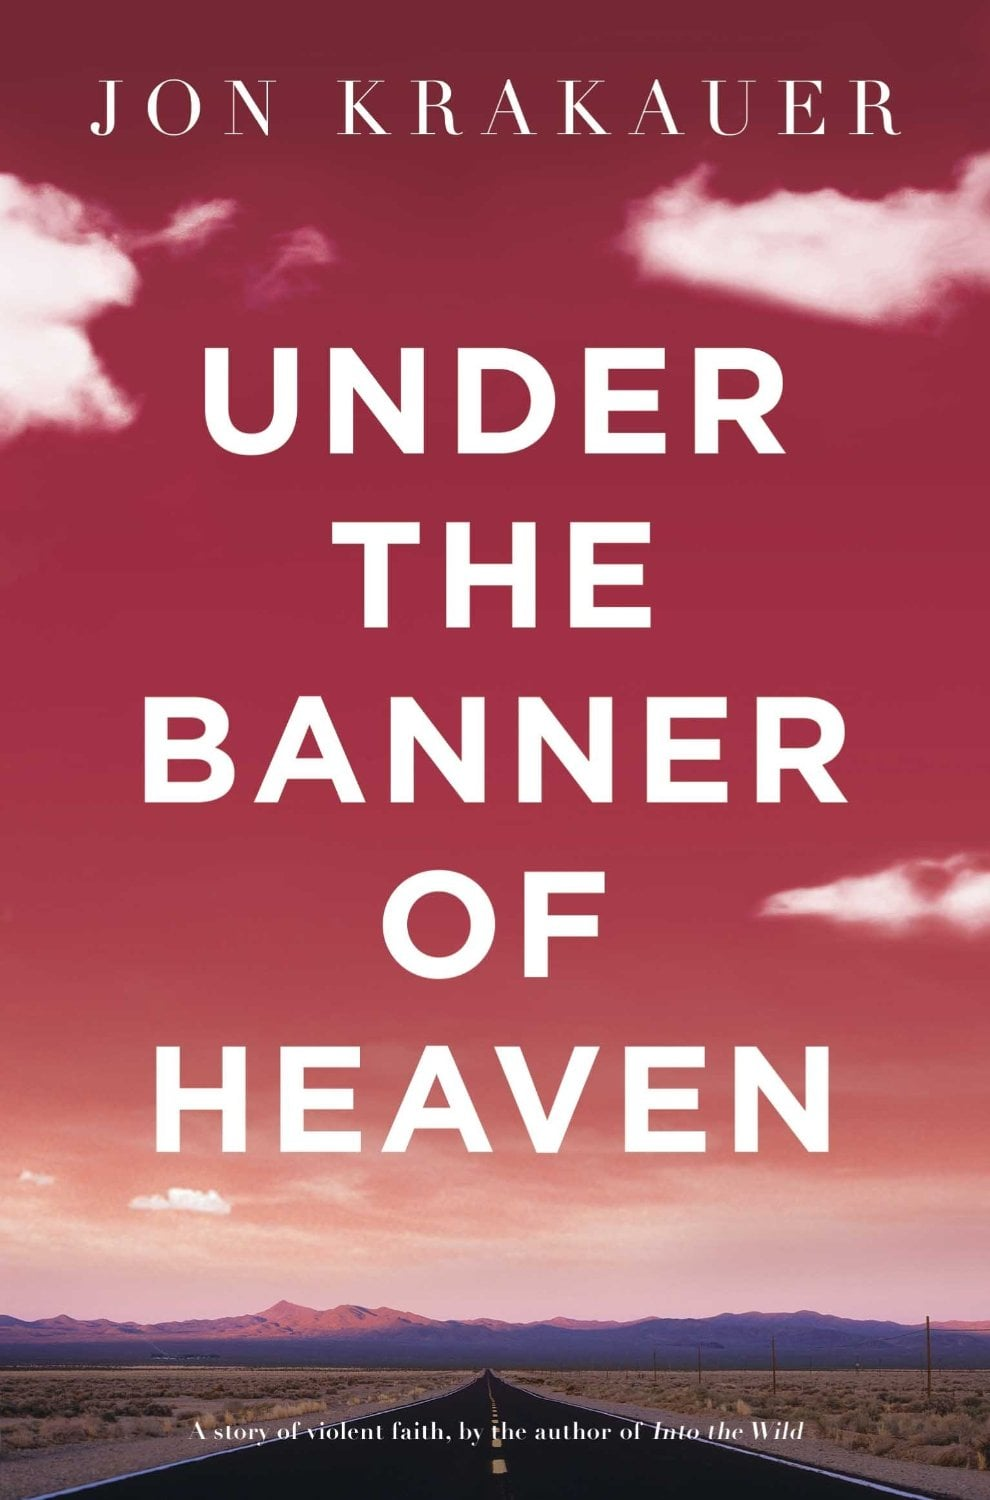 Utah: Under the Banner of Heaven by Jon Krakauer